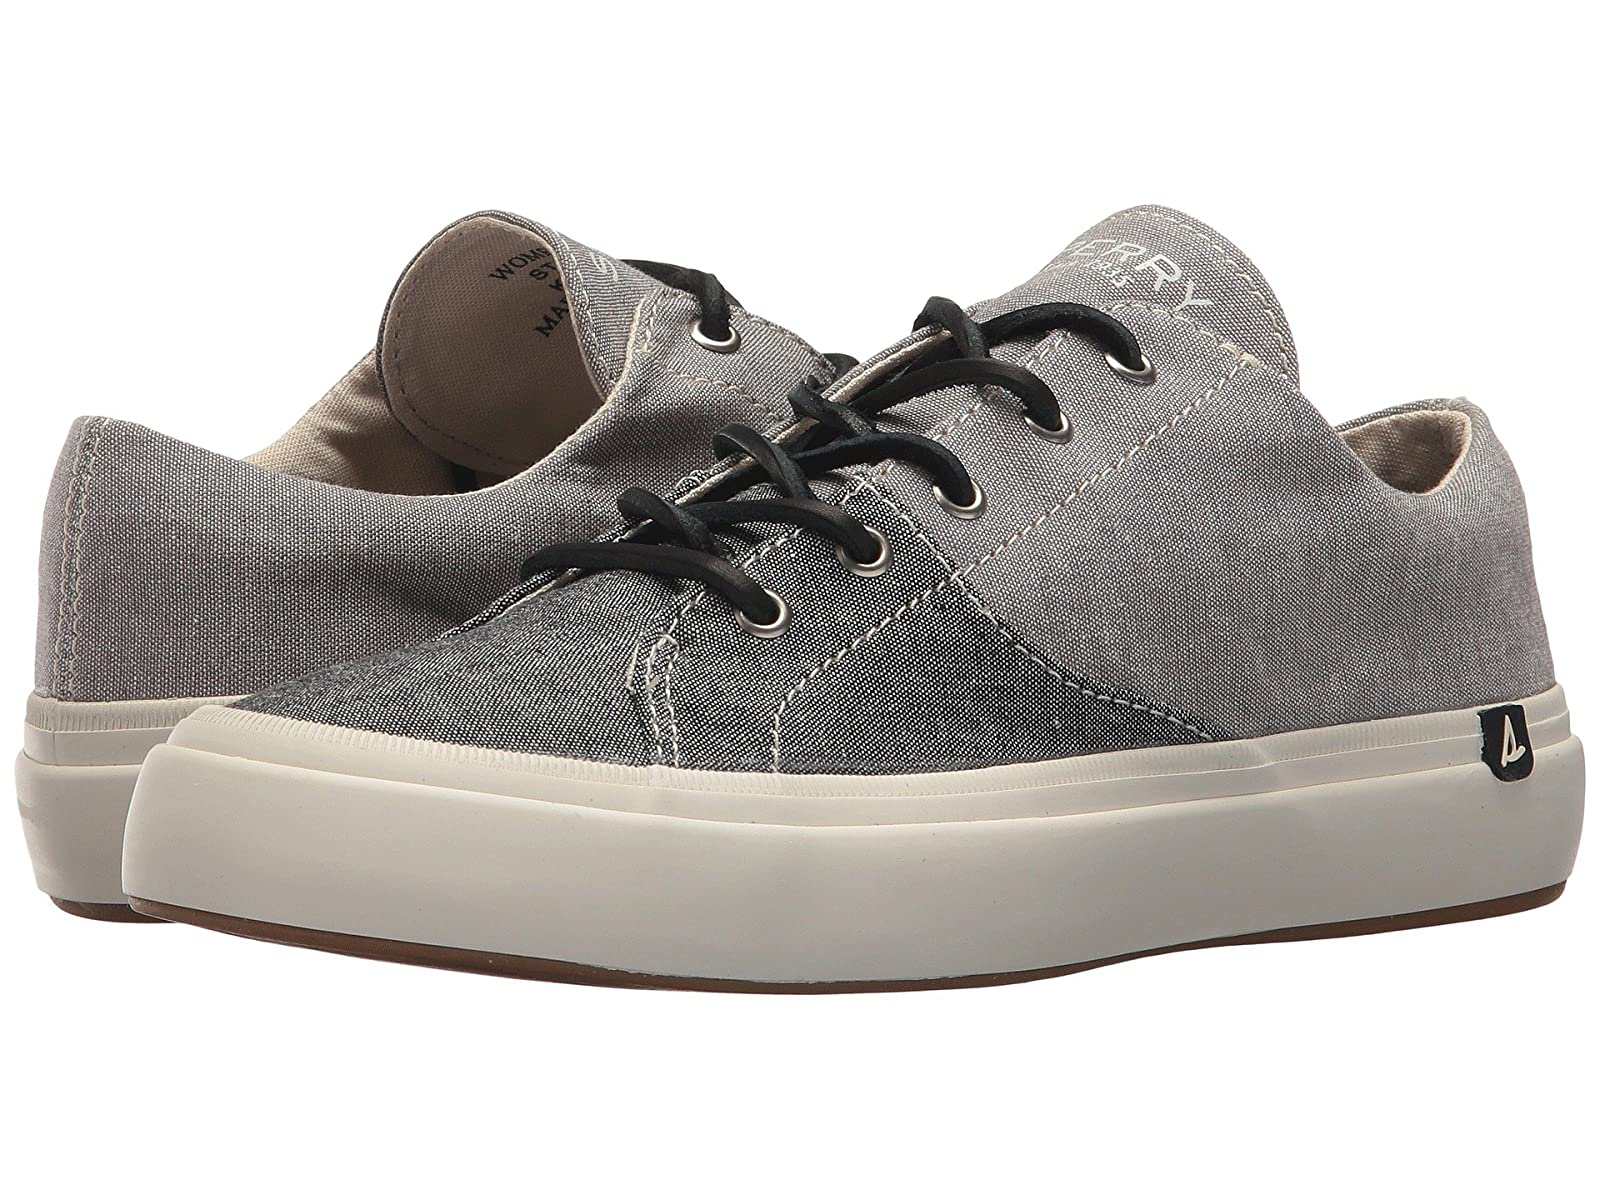 Sperry Haven Lace-UpCheap and distinctive eye-catching shoes